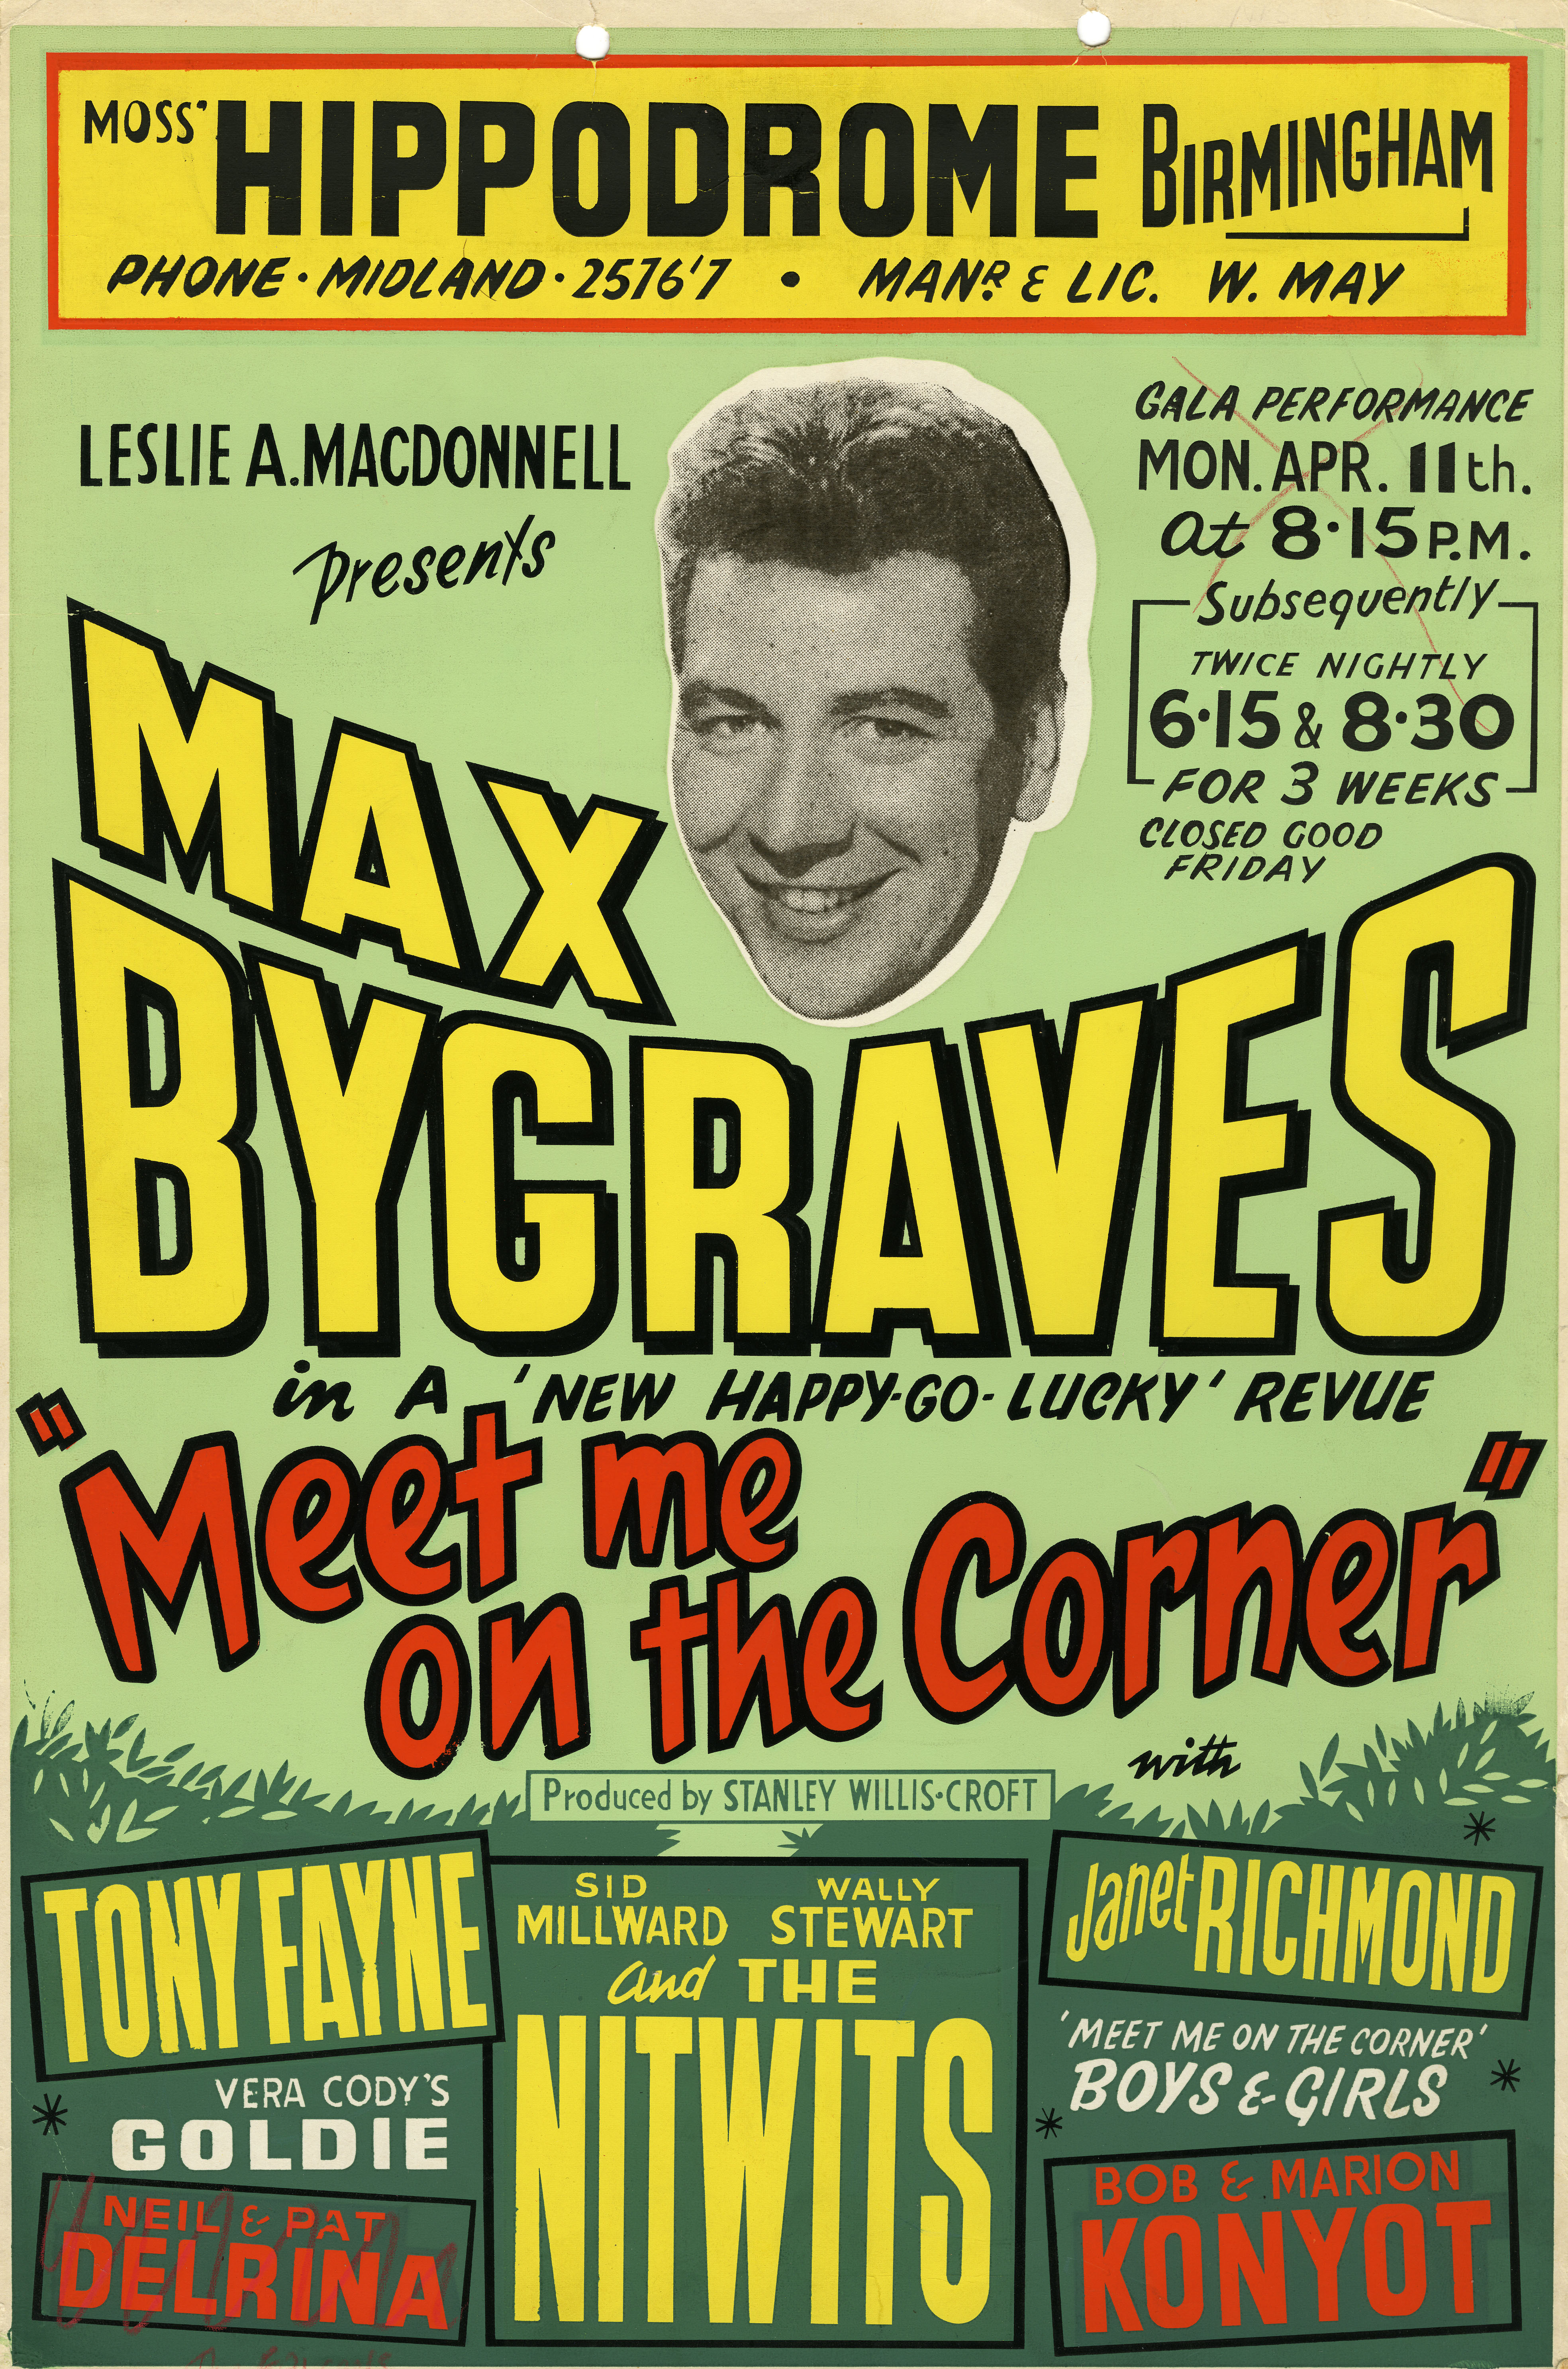 Poster for Meet me on the Corner, April 1960